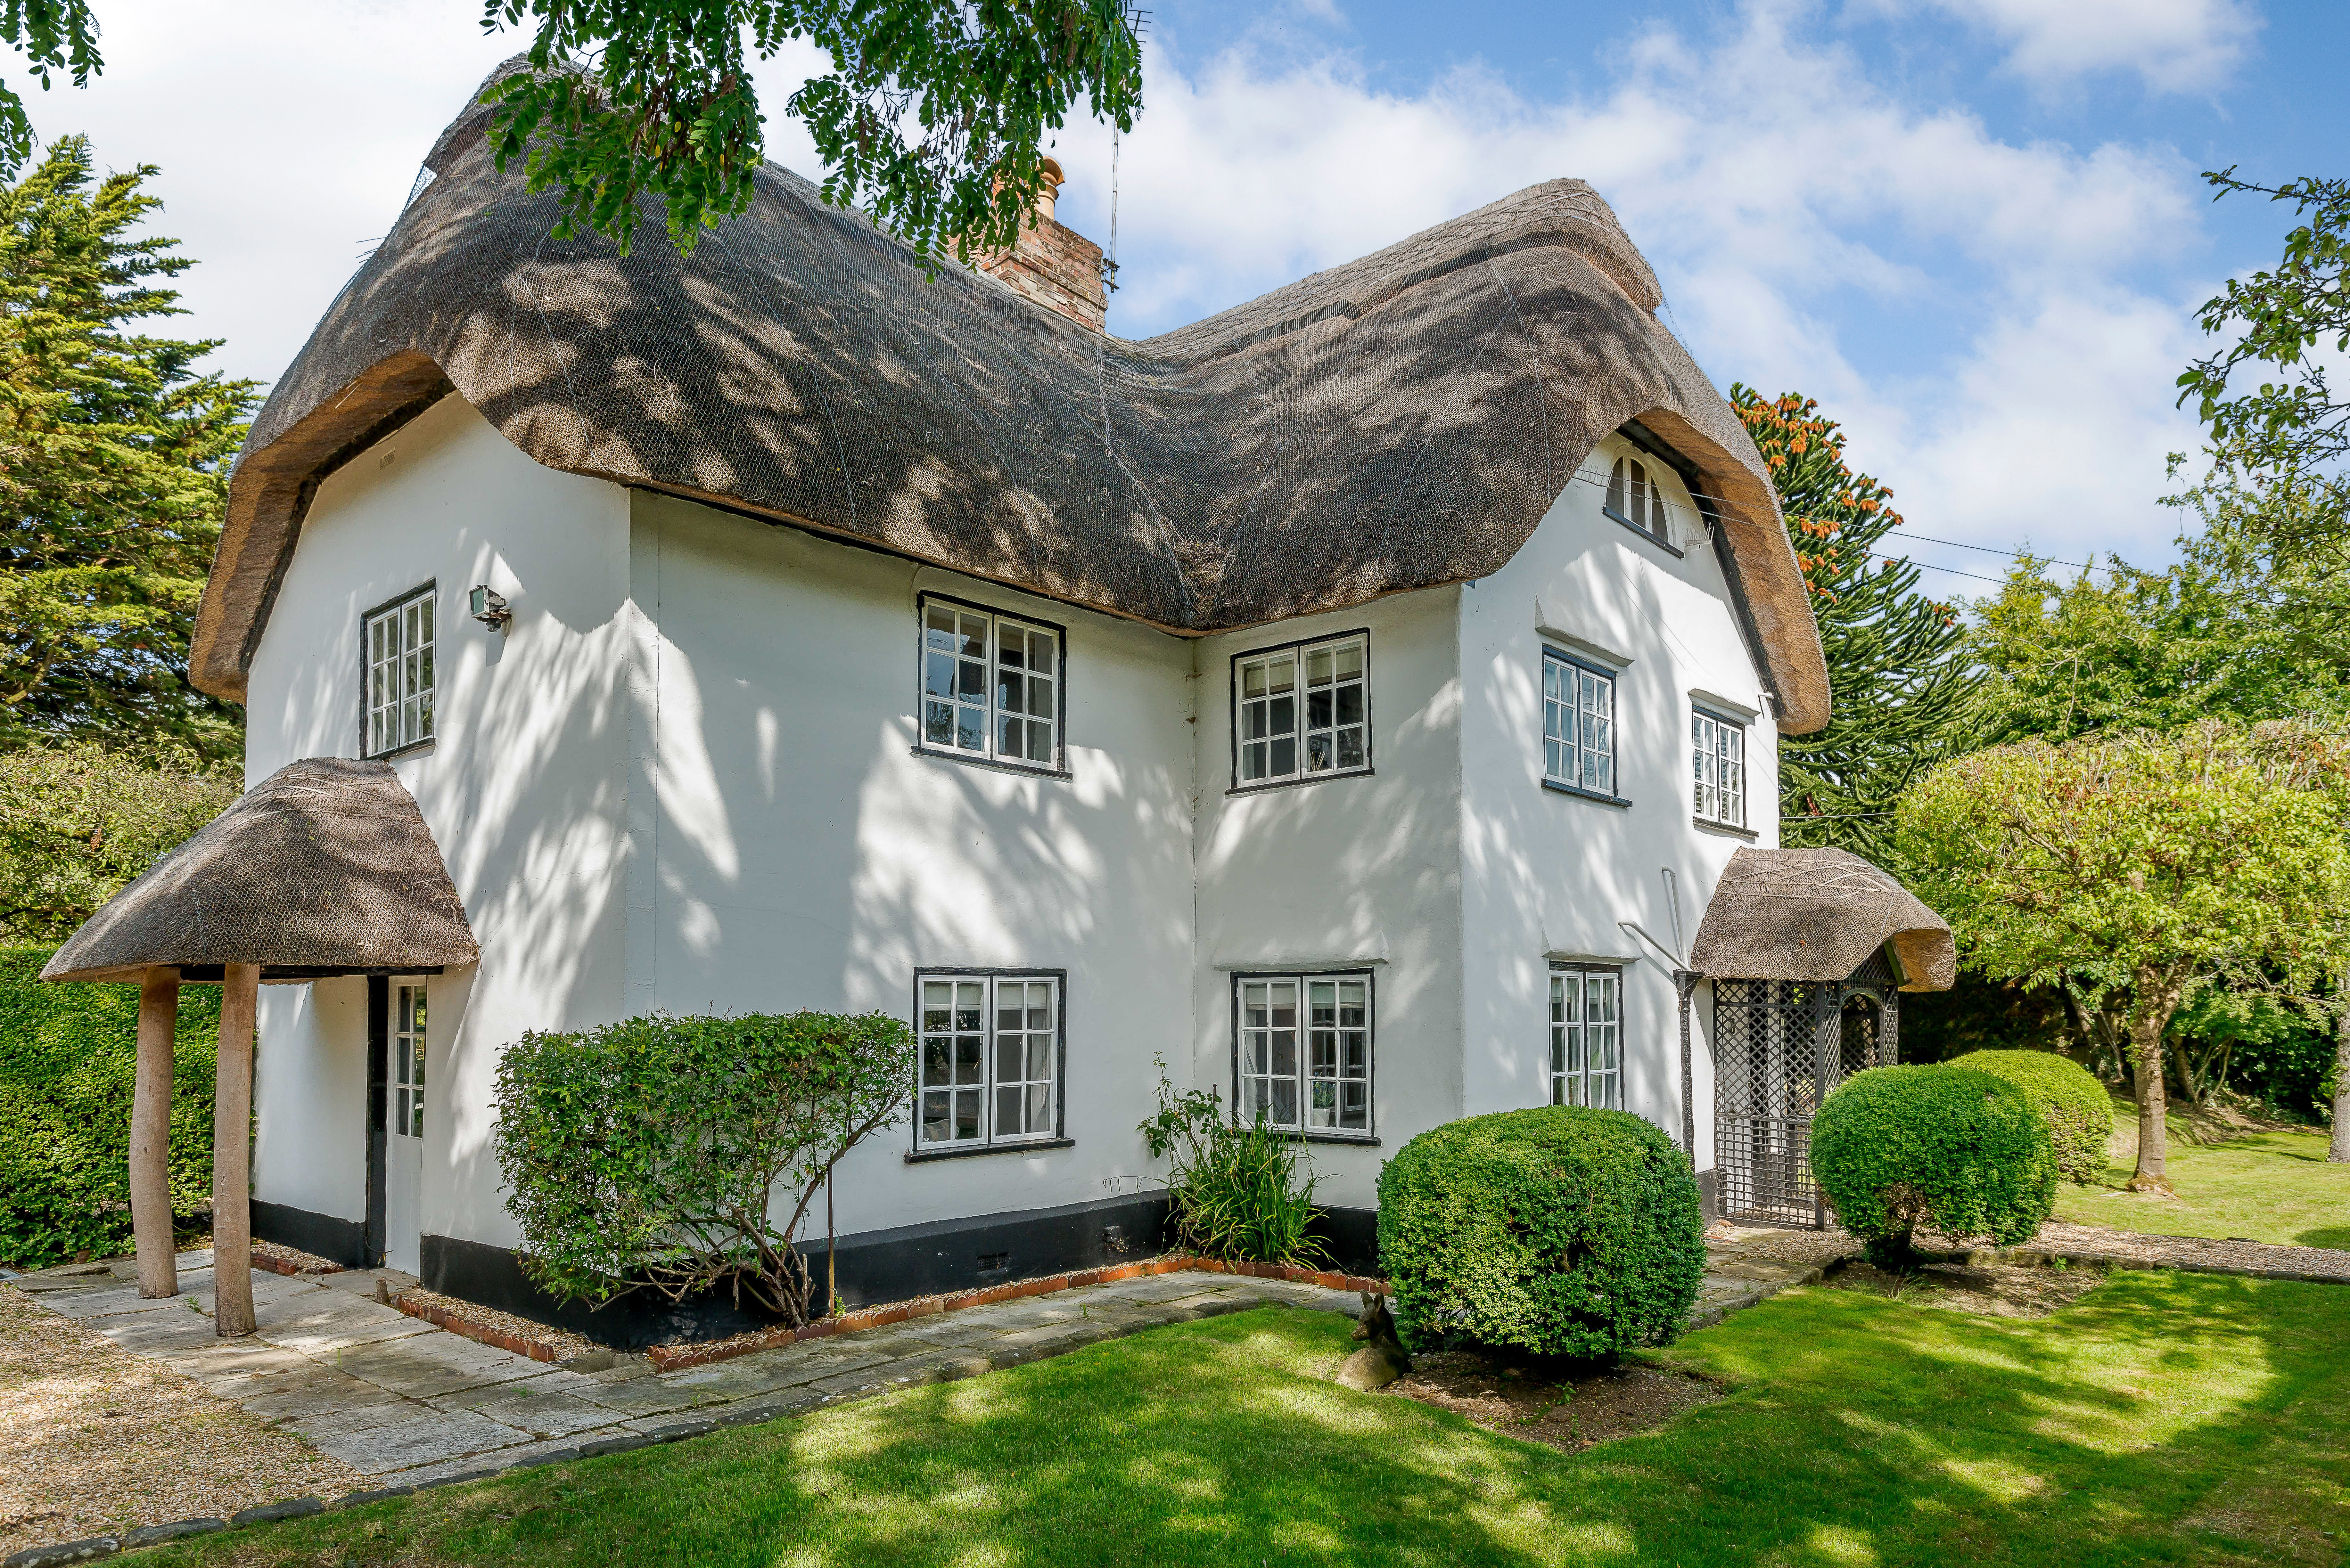 Large cottage with white plaster walls and thatched roof.